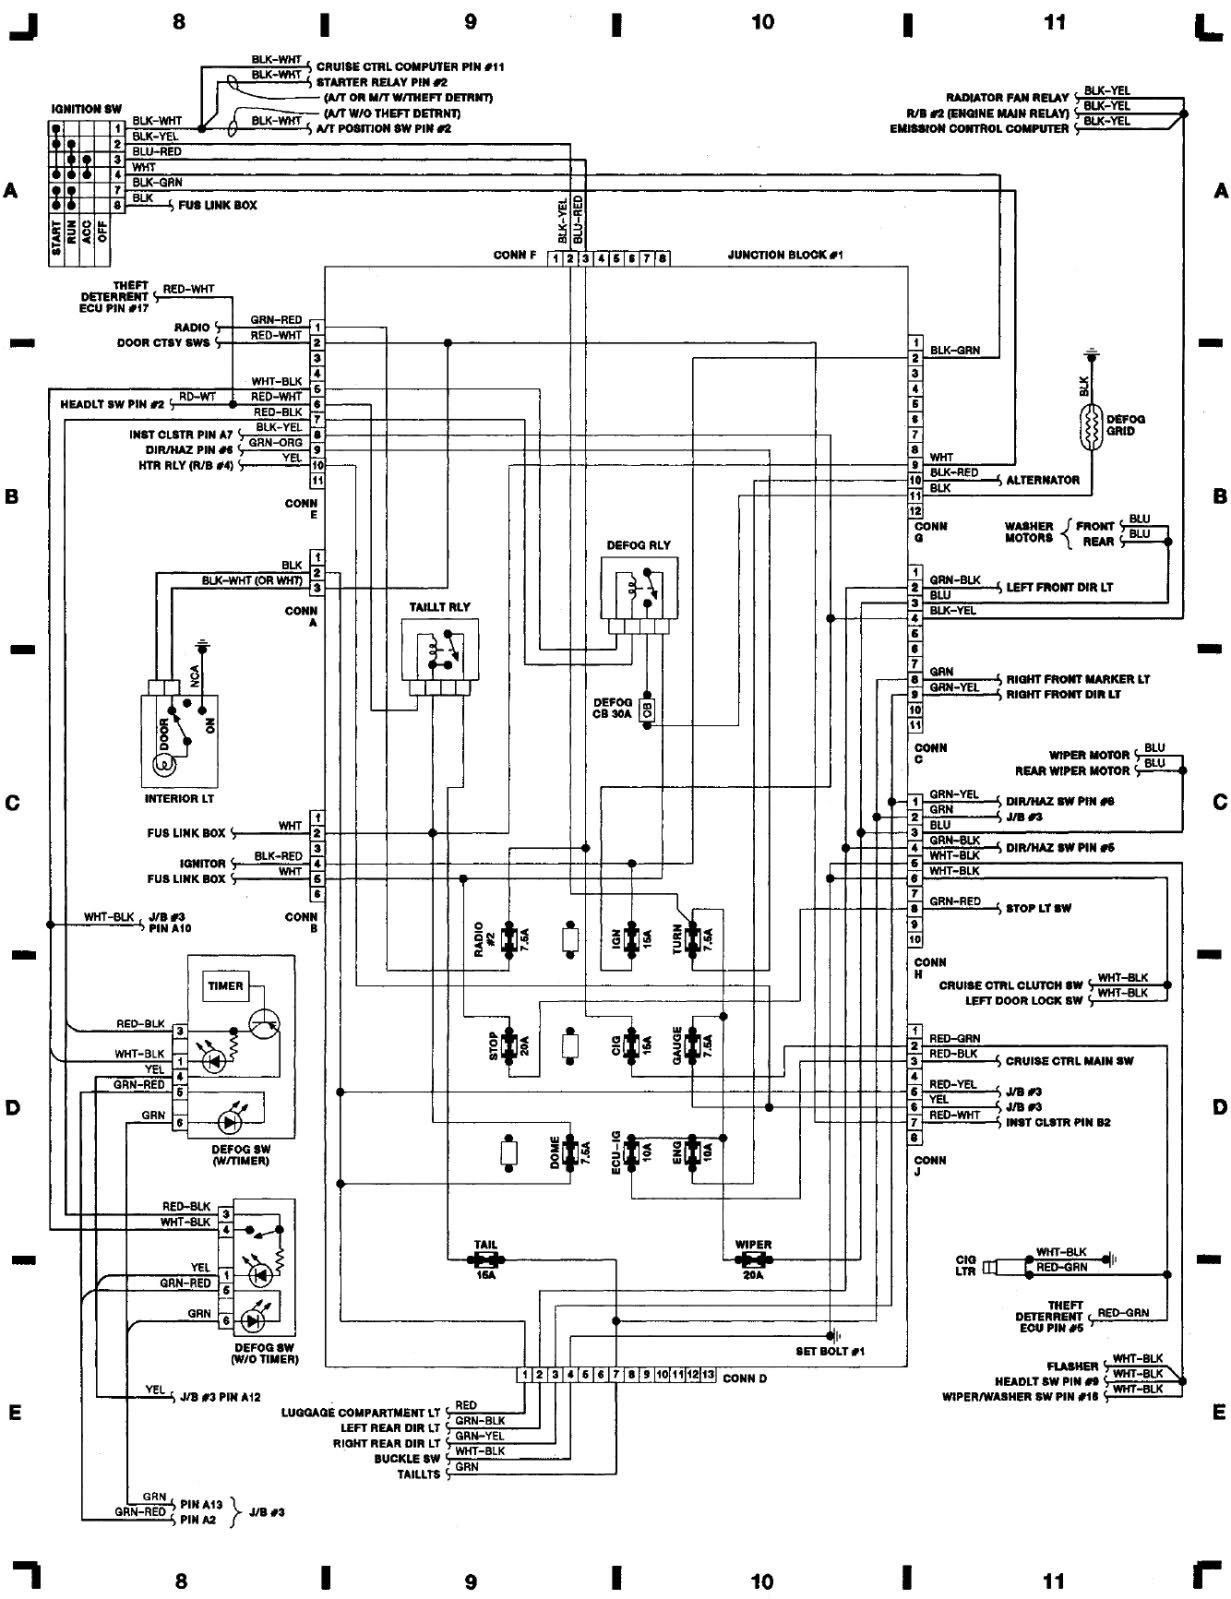 Suzuki Gt500 Wiring Diagram from i.pinimg.com